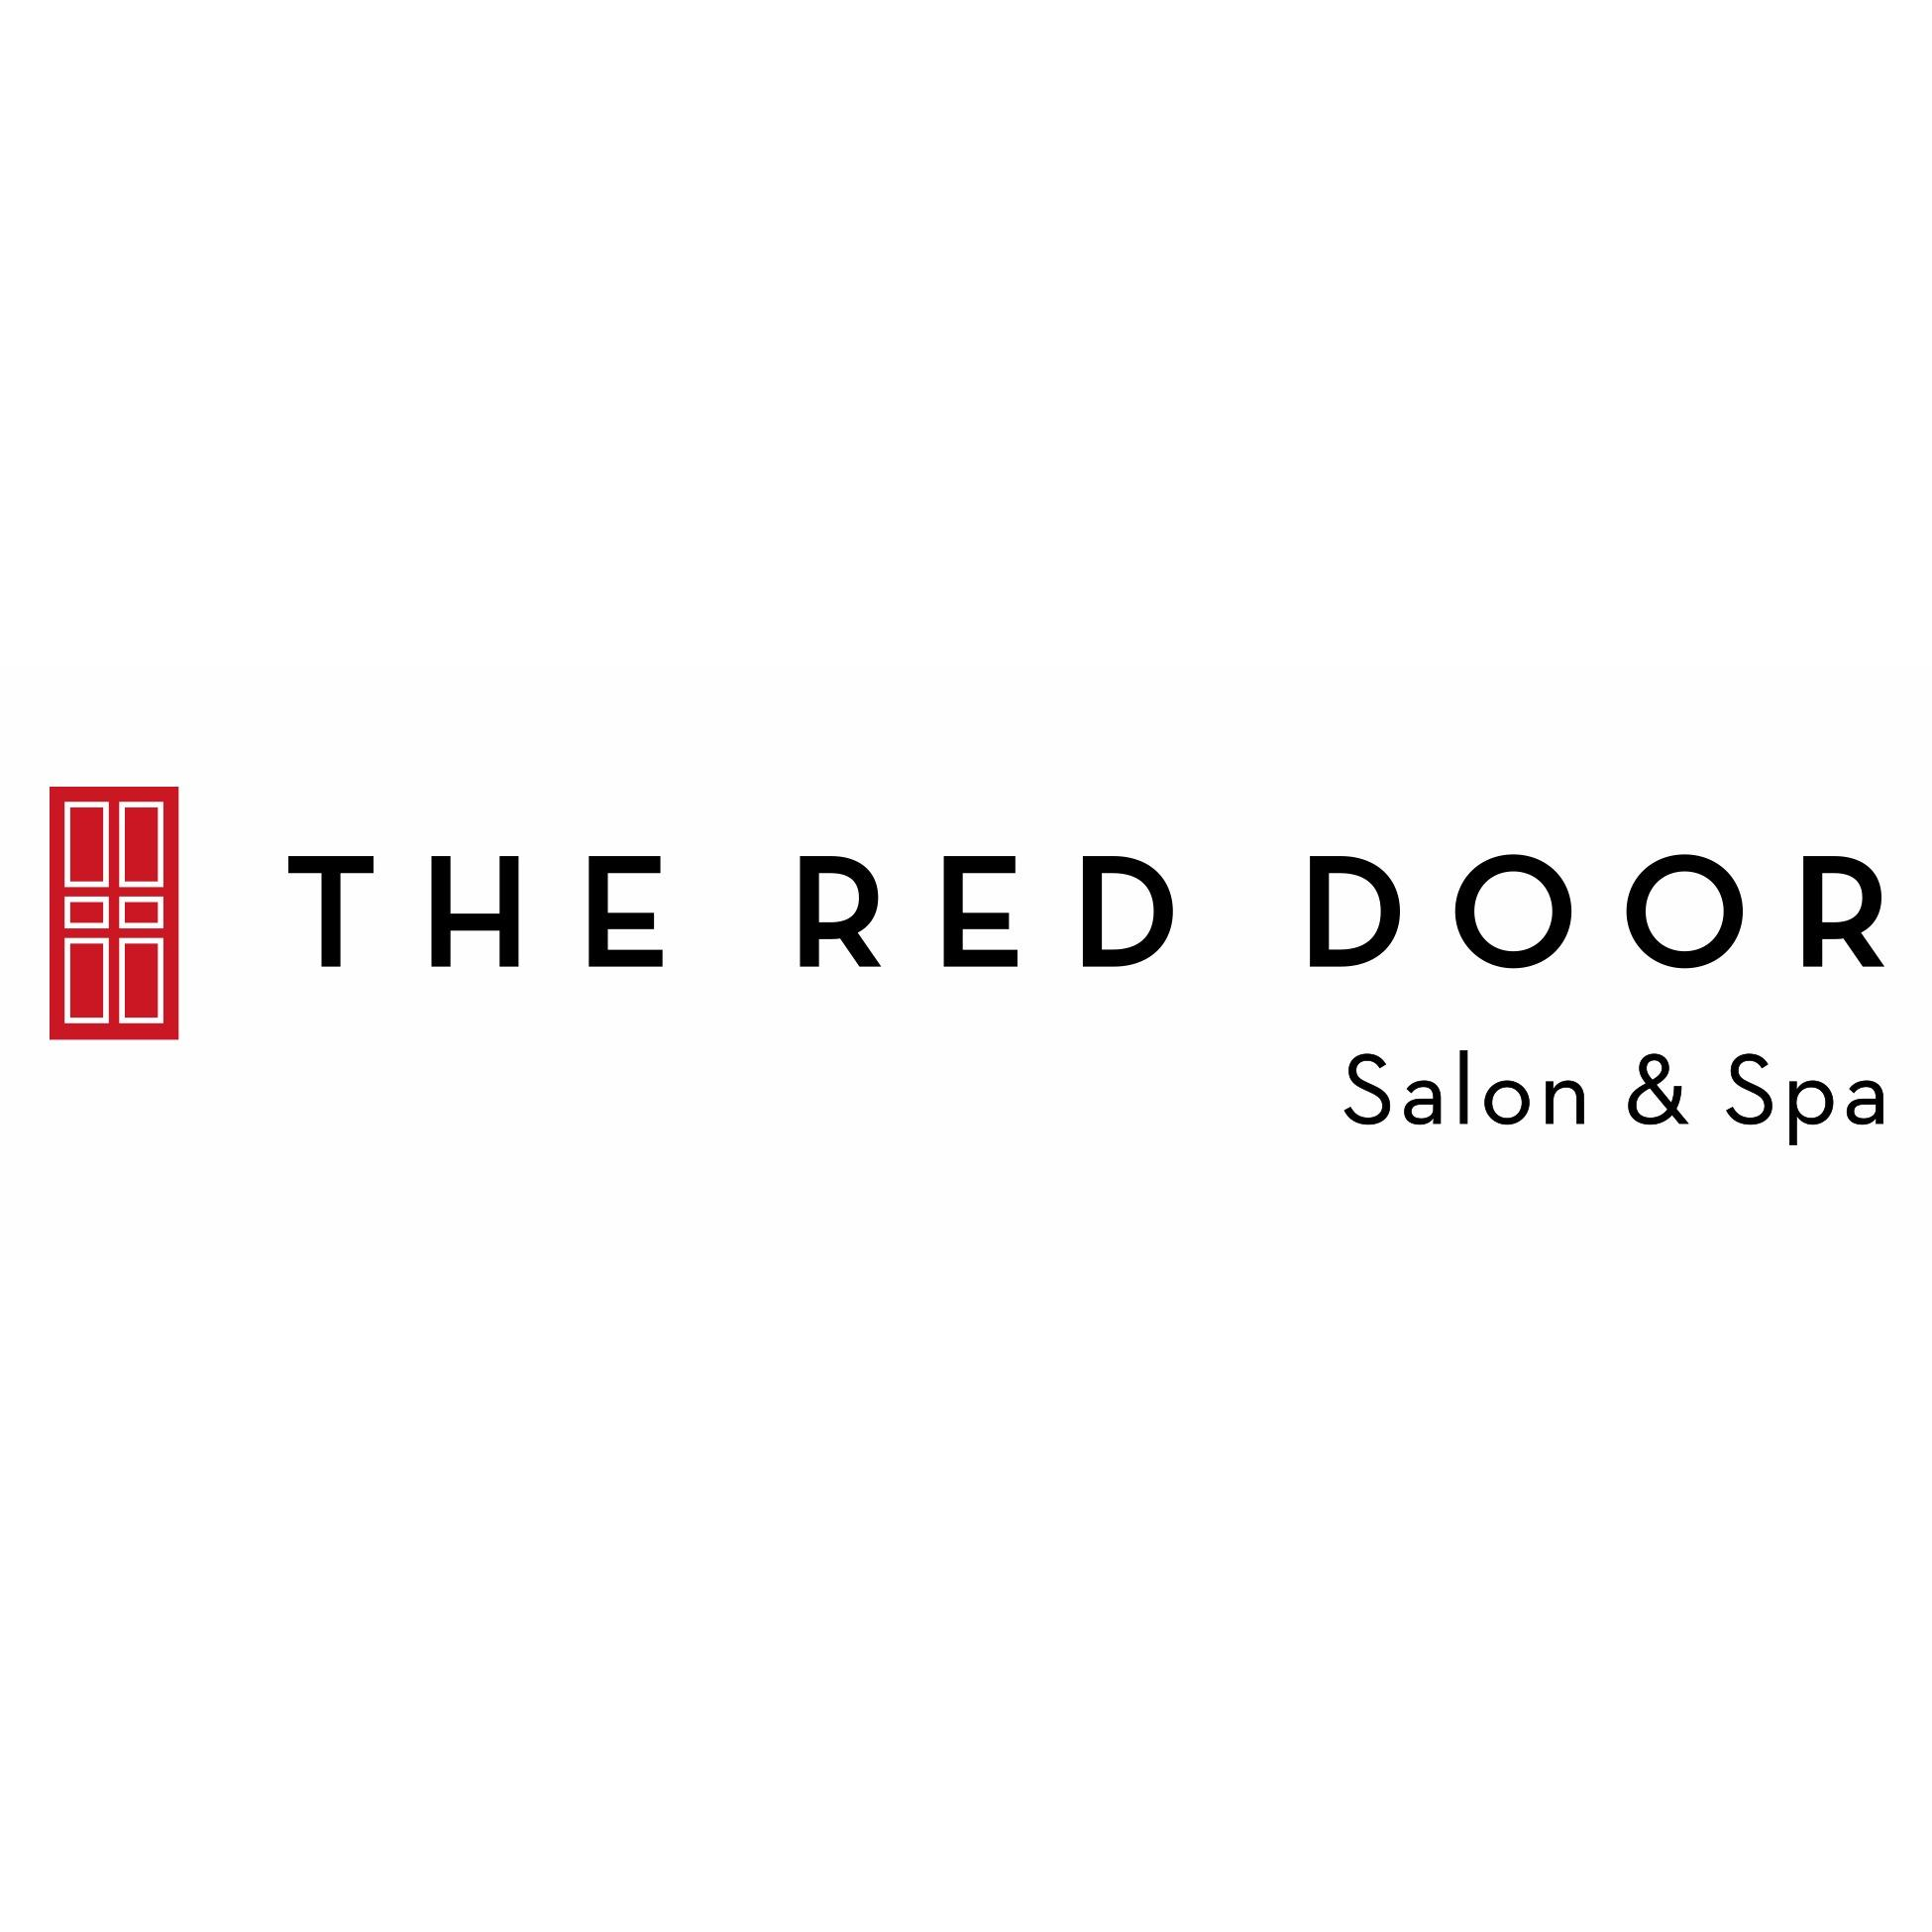 The Red Door Salon & Spa - Reston, VA - Spas